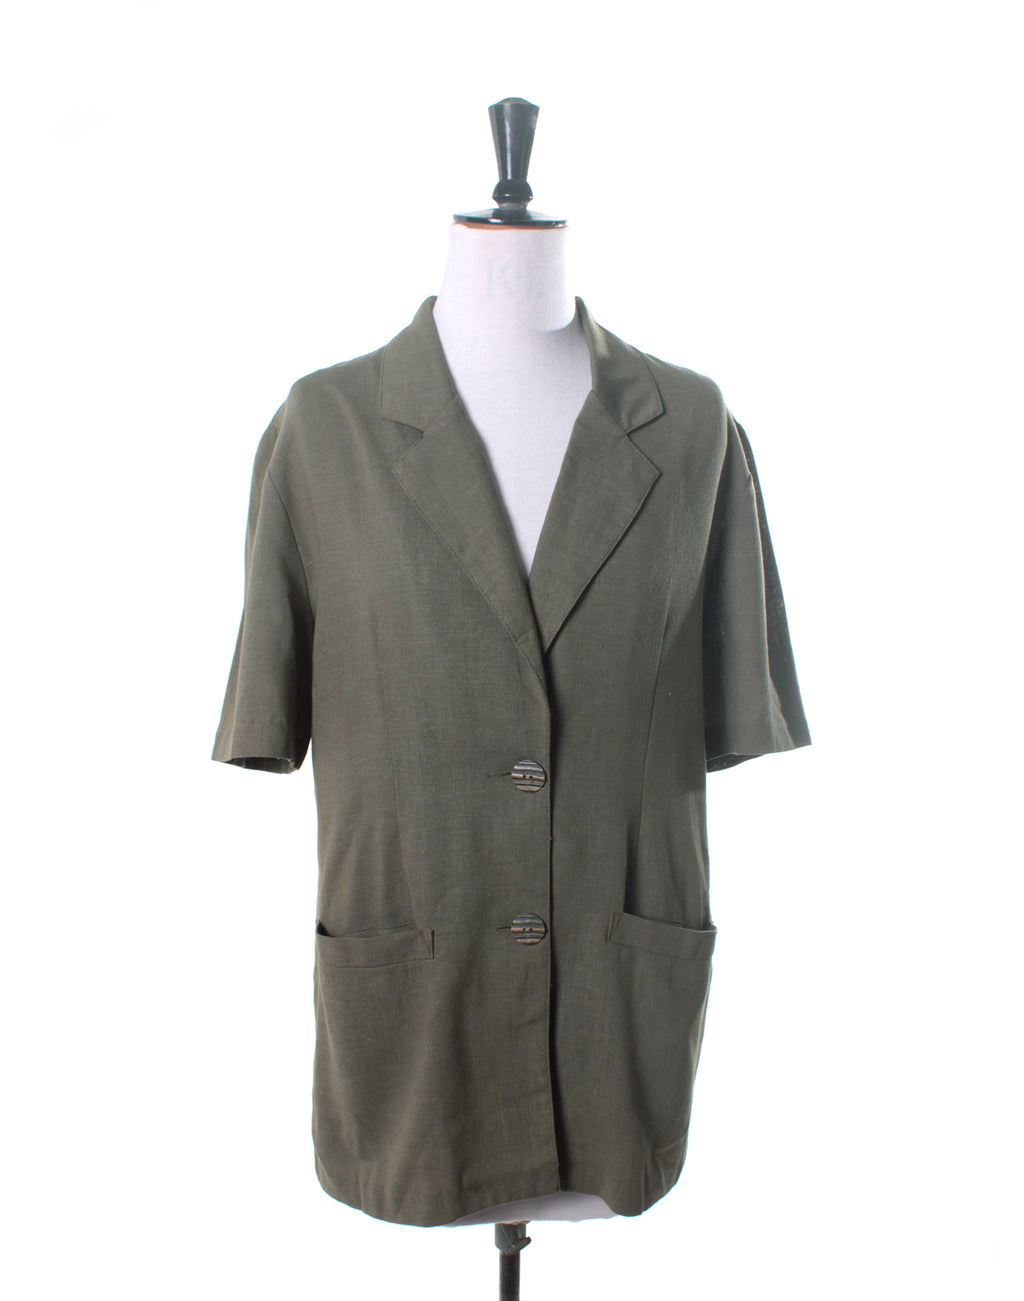 Vintage 80's Katies Green Linen Jacket